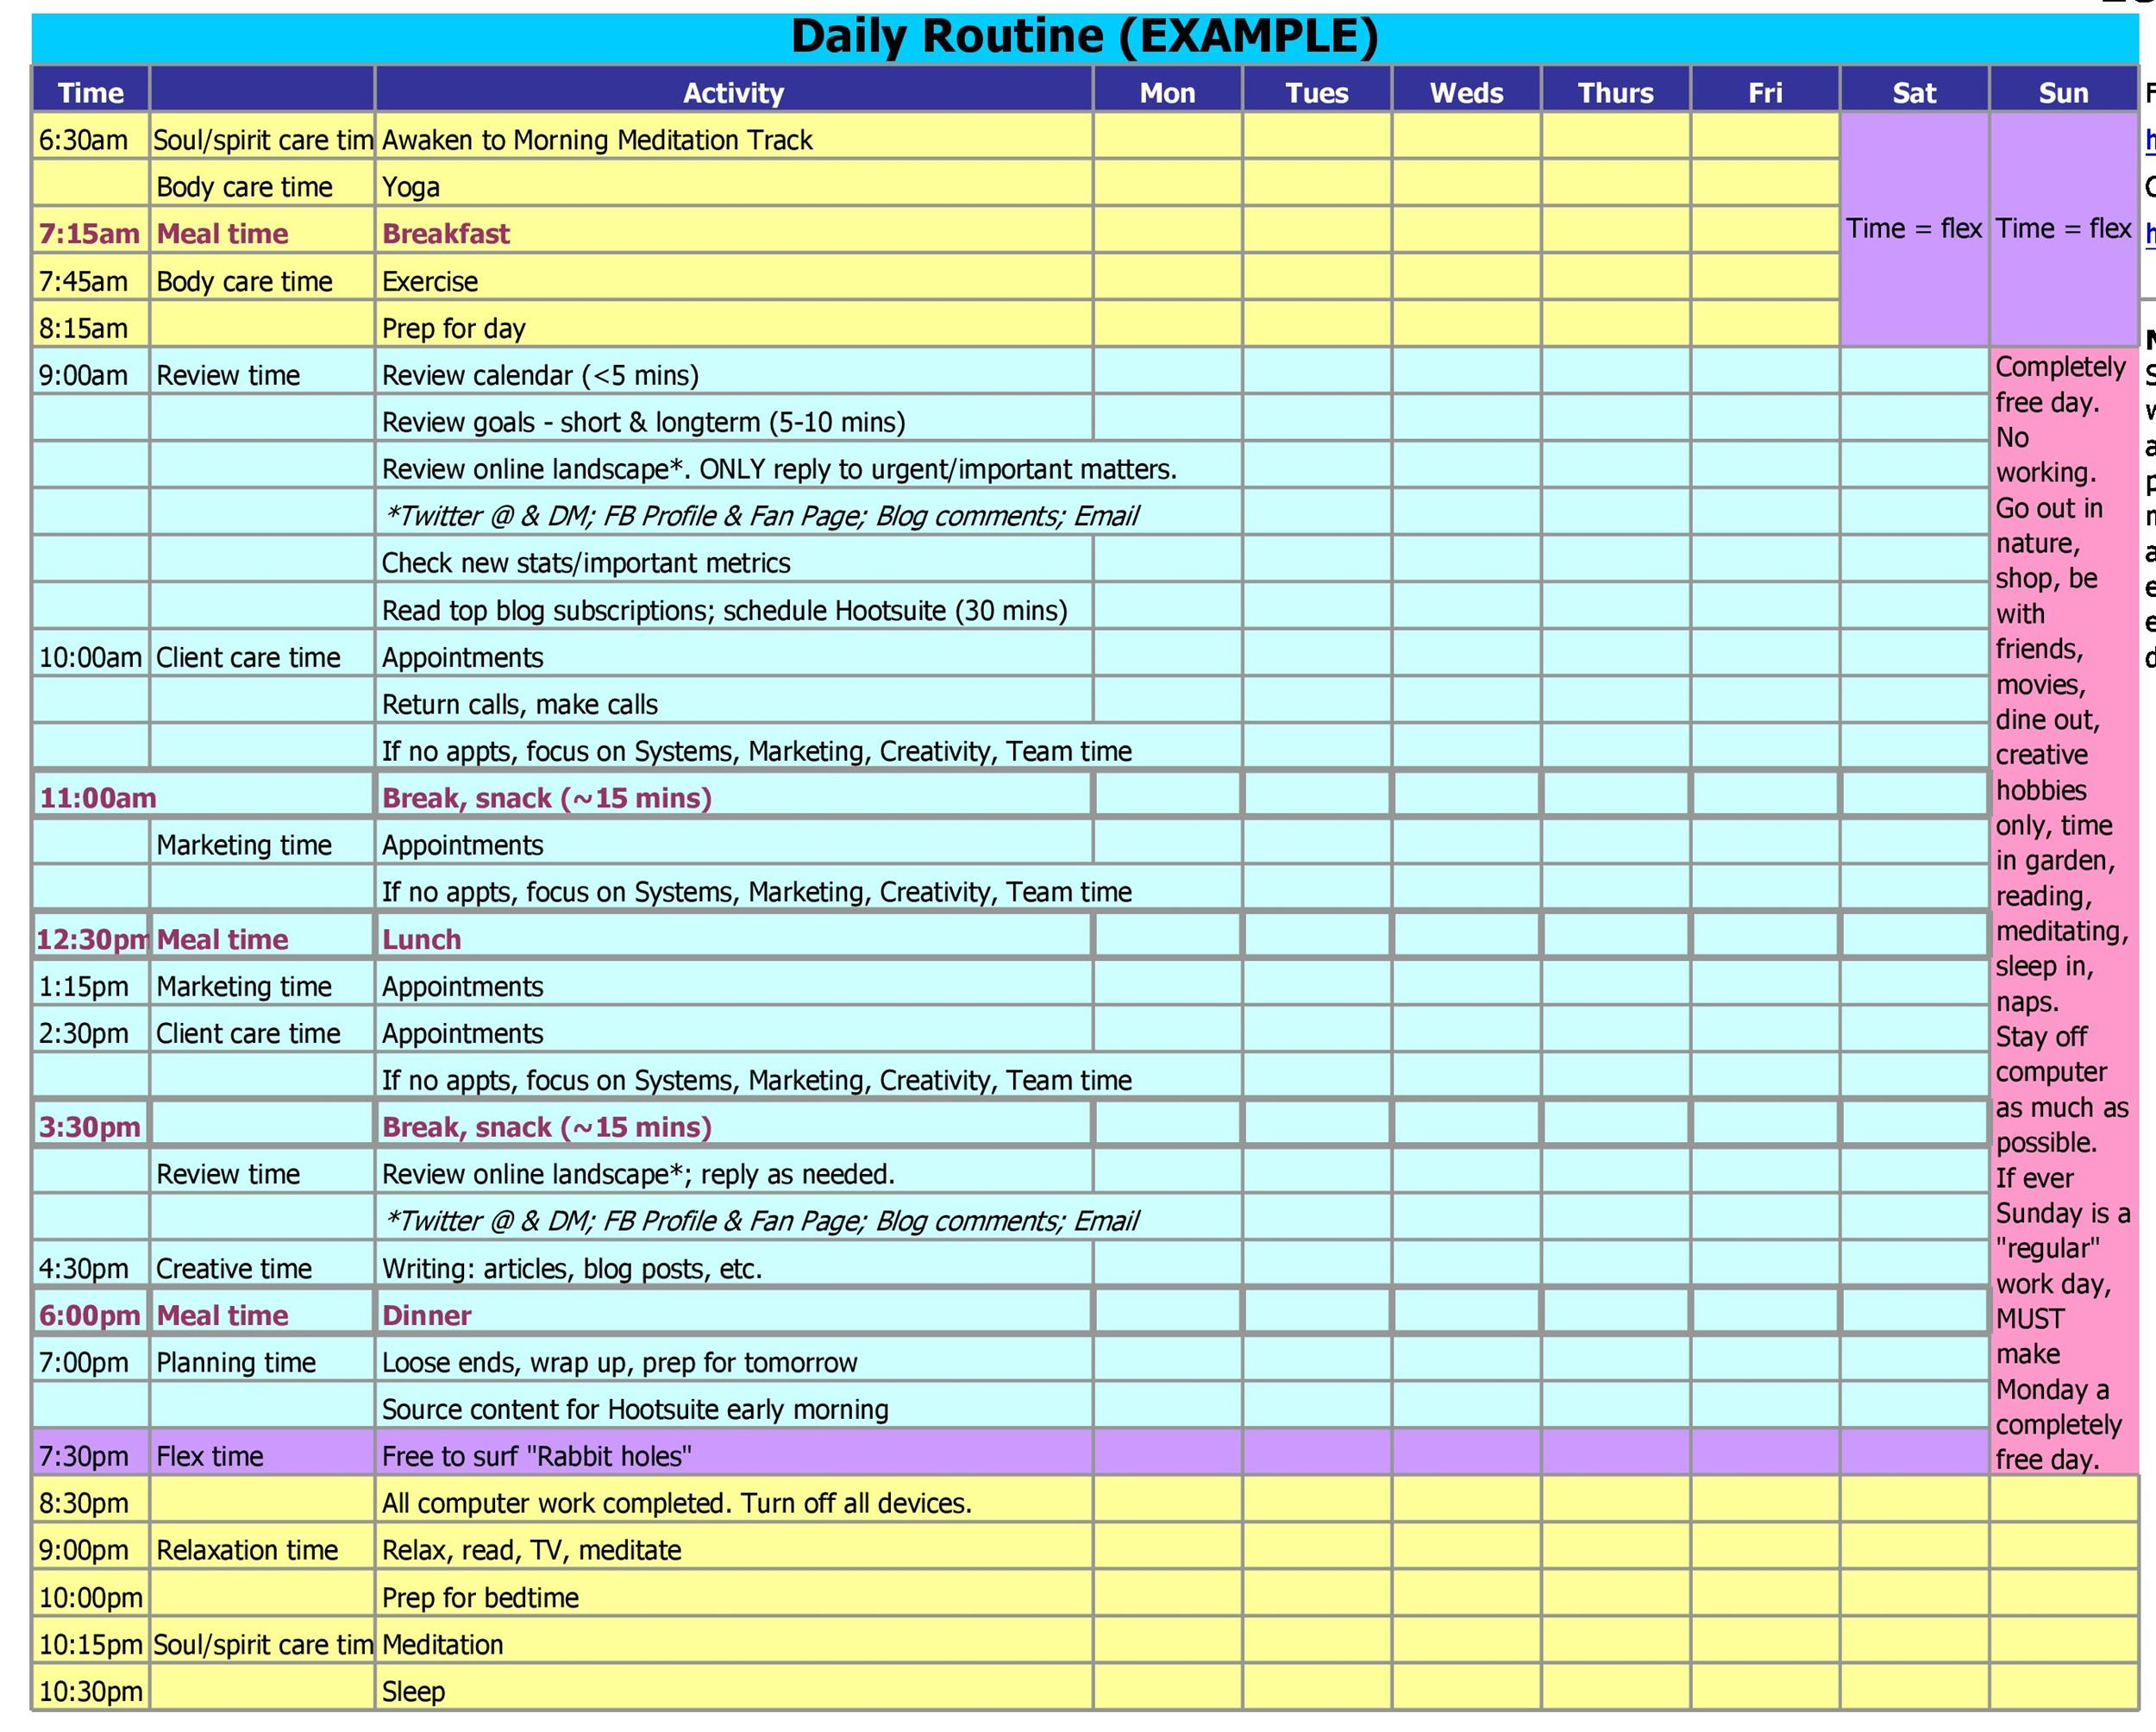 17 Perfect Daily Work Schedule Templates Template Lab – Daily Routine Template